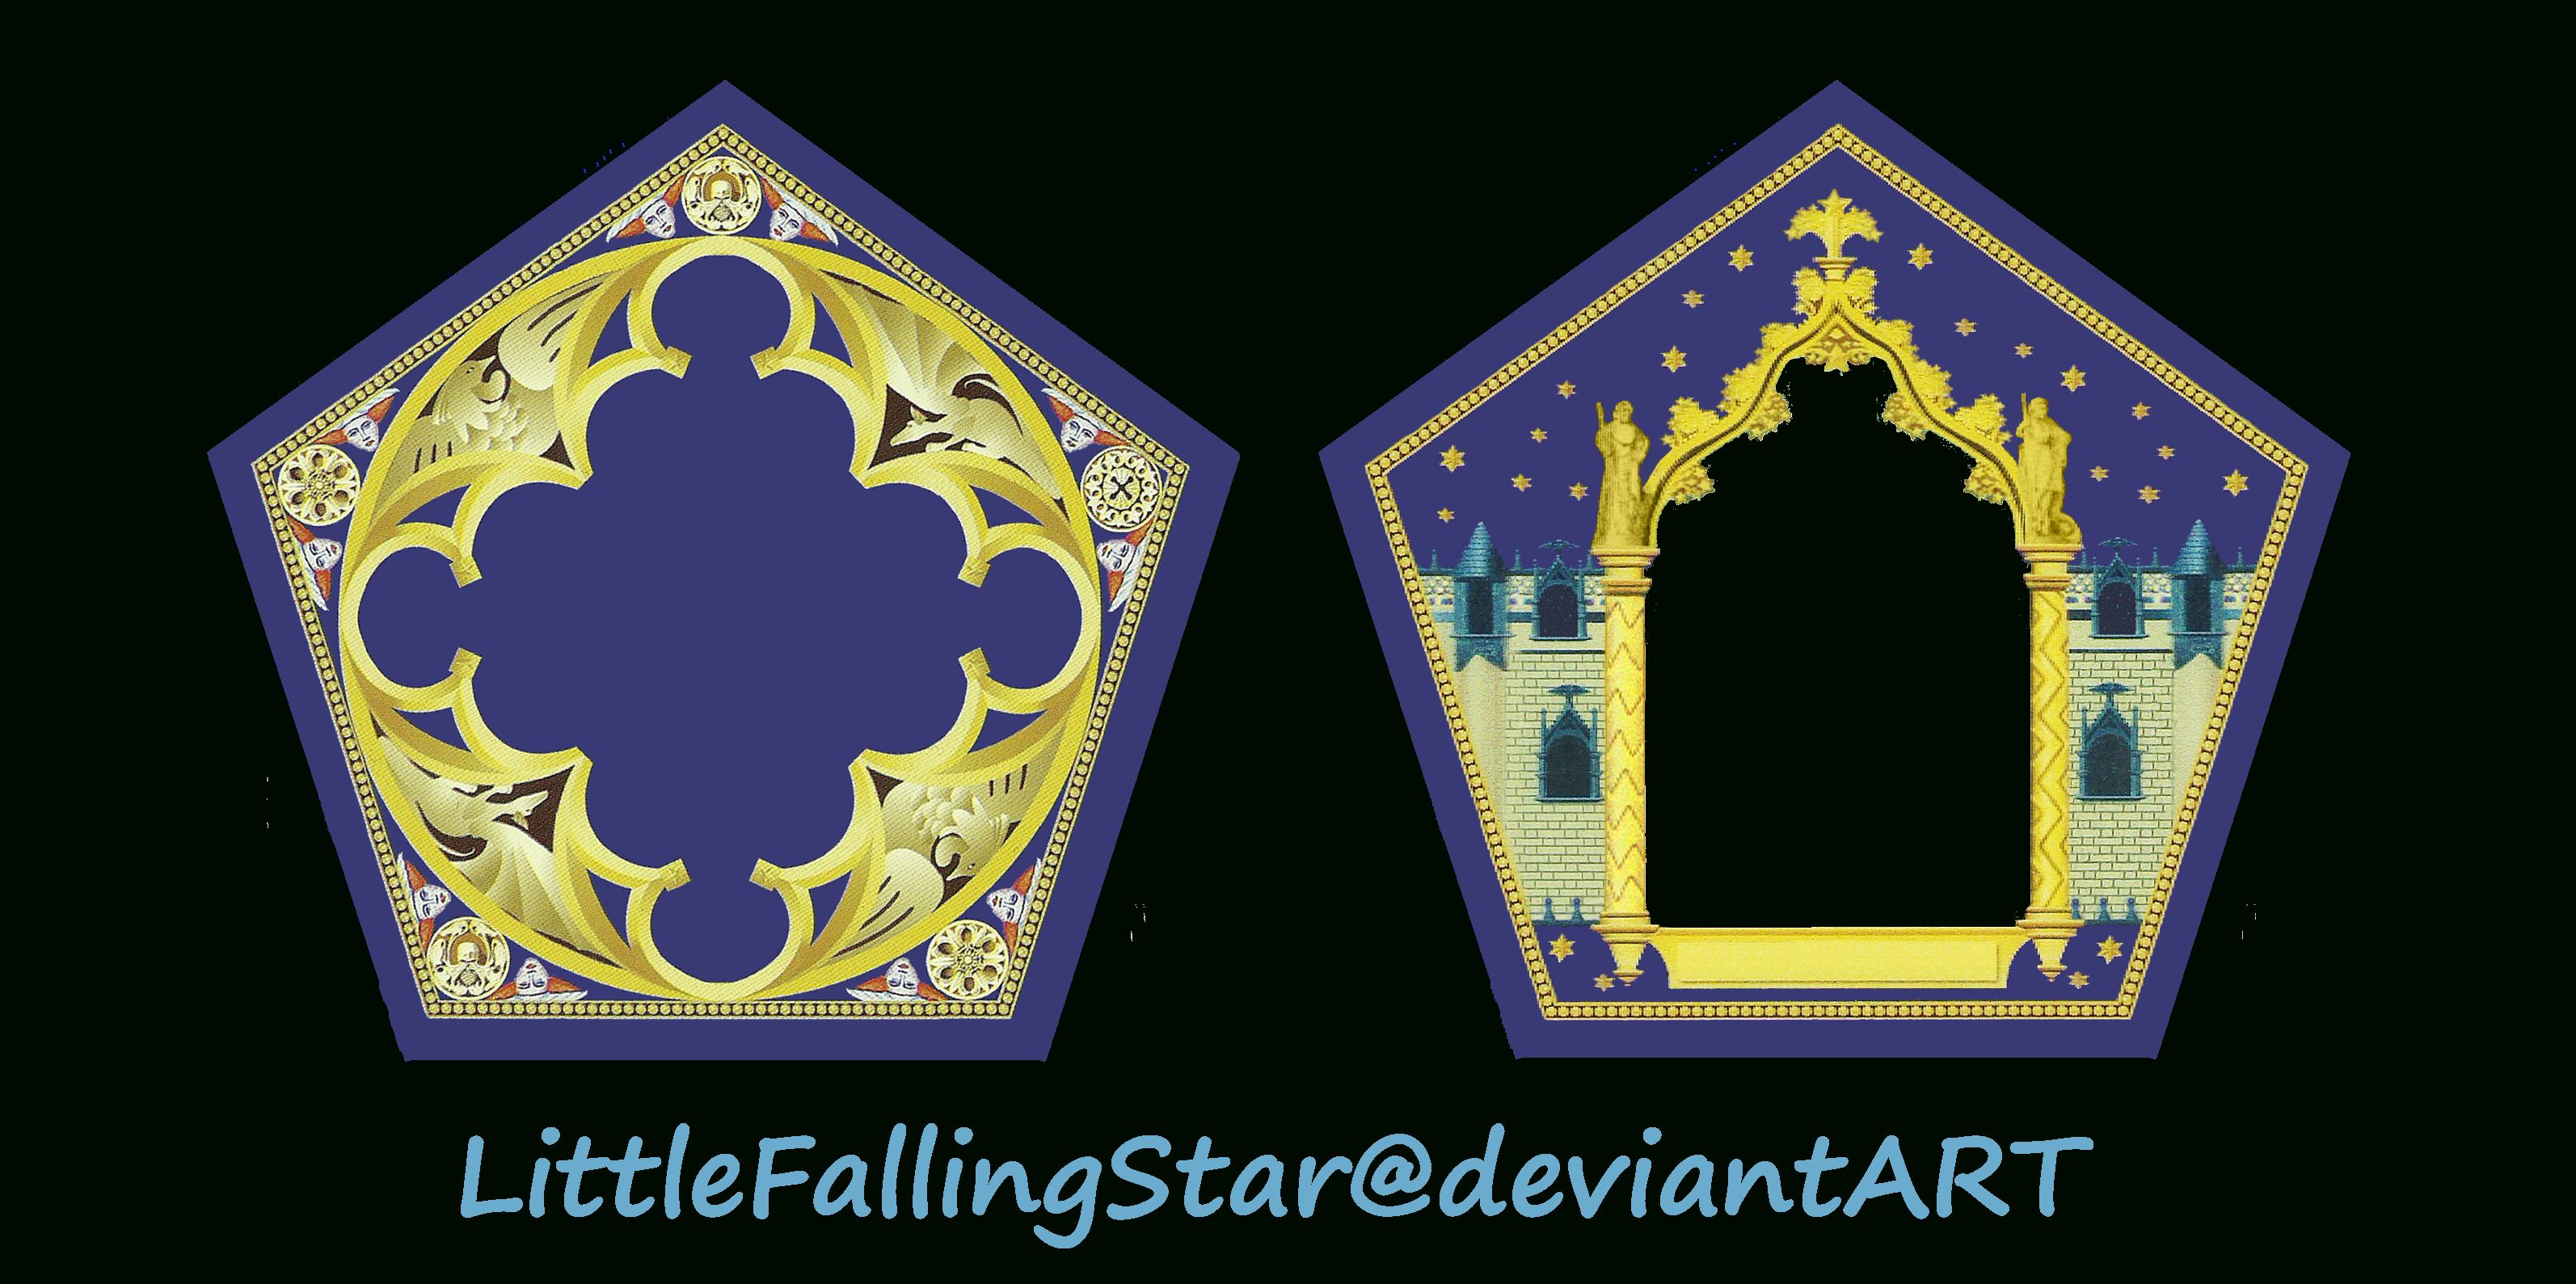 Chocolate Frog Cardlittlefallingstar Deviantart On With Chocolate Frog Card Template Cumed Org Card Template Trading Card Template Chocolate Frog